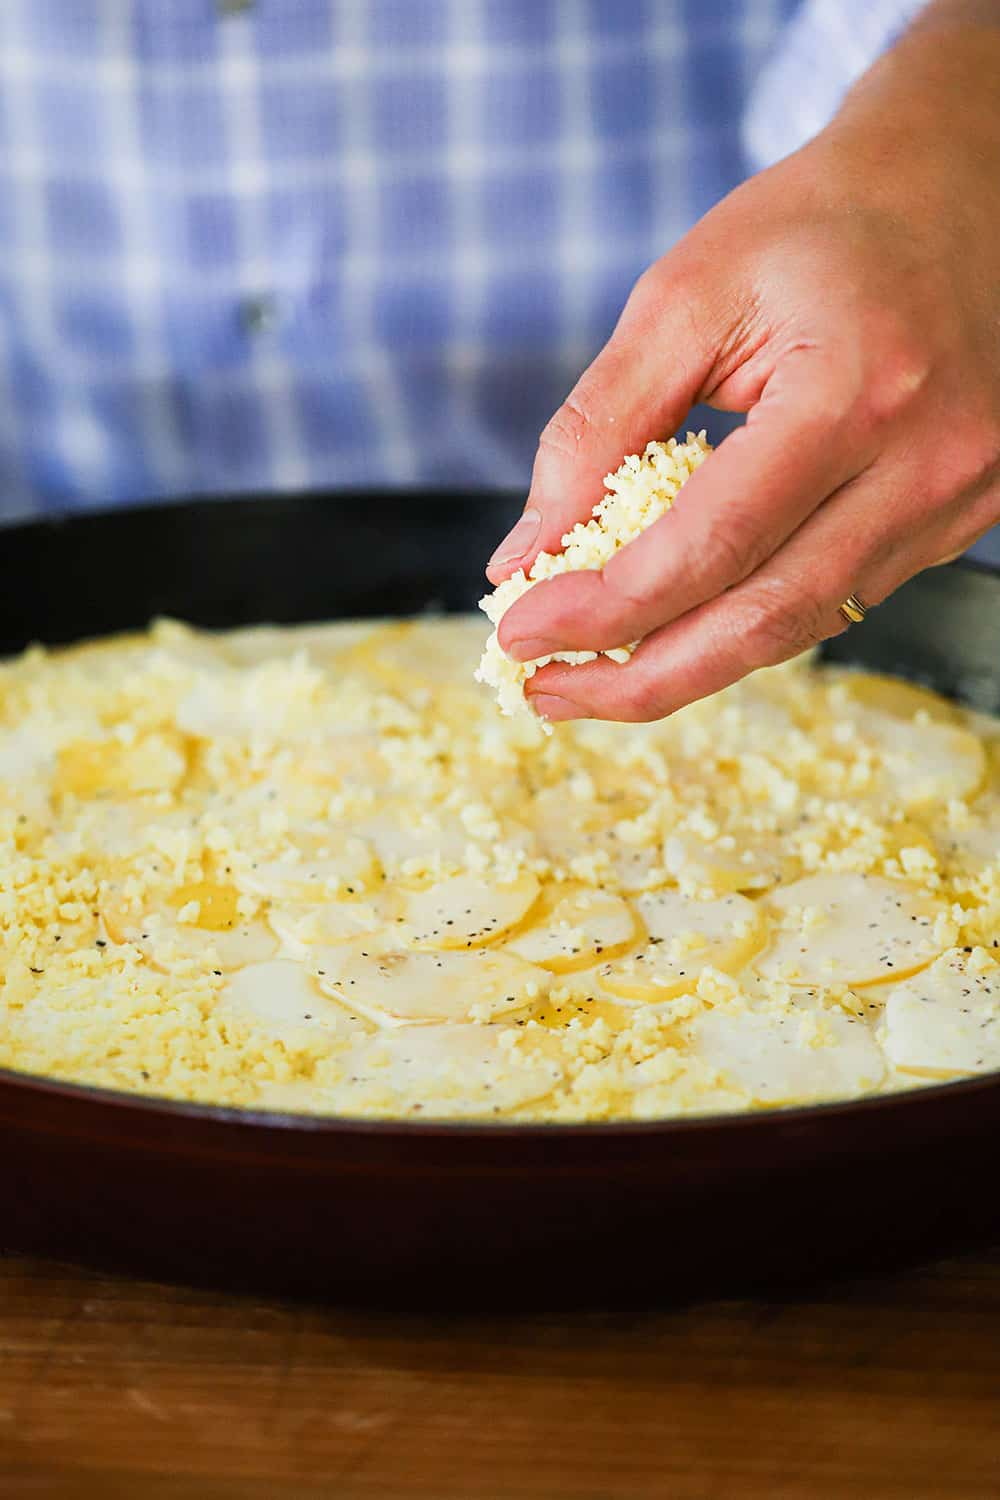 A person sprinkling shredded Gruyere cheese over layers of potatoes in cream all in a oval baking dish.